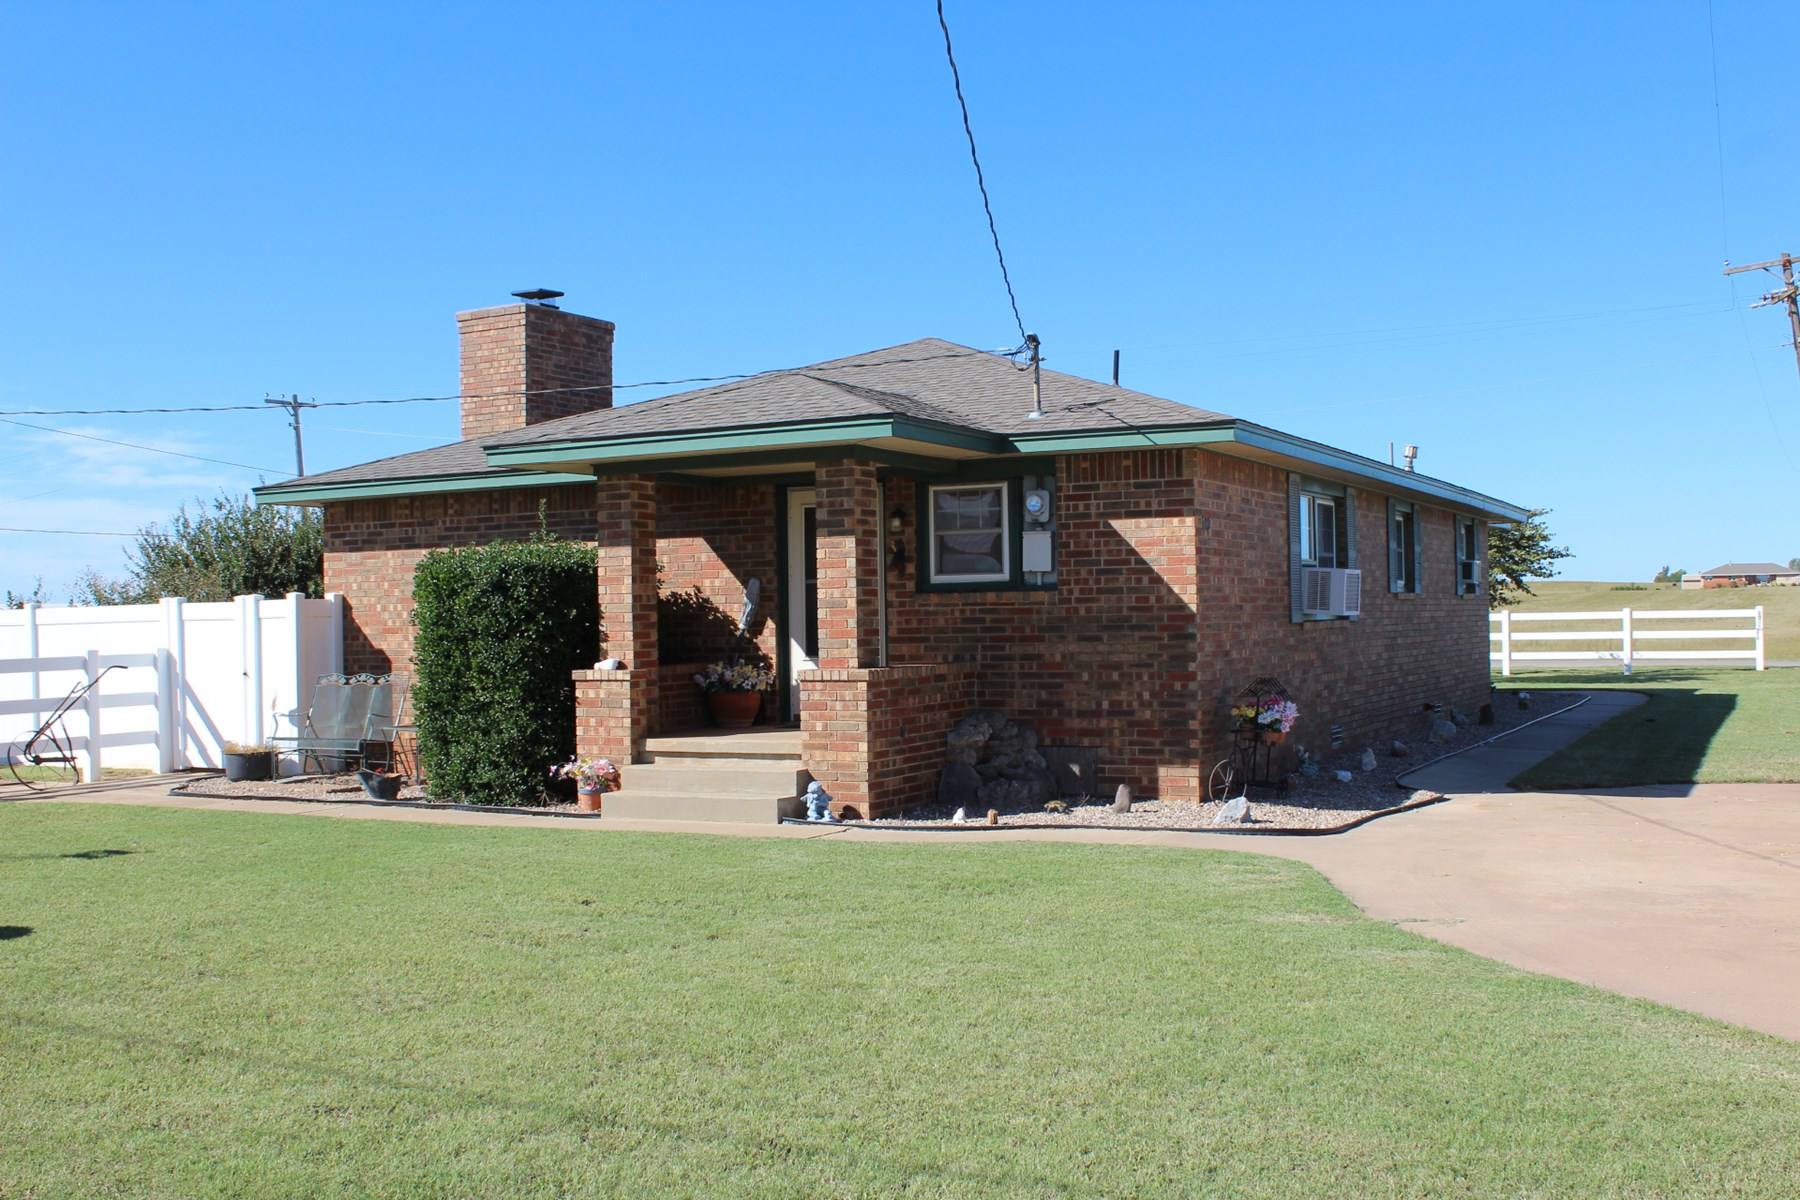 HOME FOR SALE IN CANUTE W/ 3 BEDS, SHOP, MAN CAVE, ON 5 LOTS